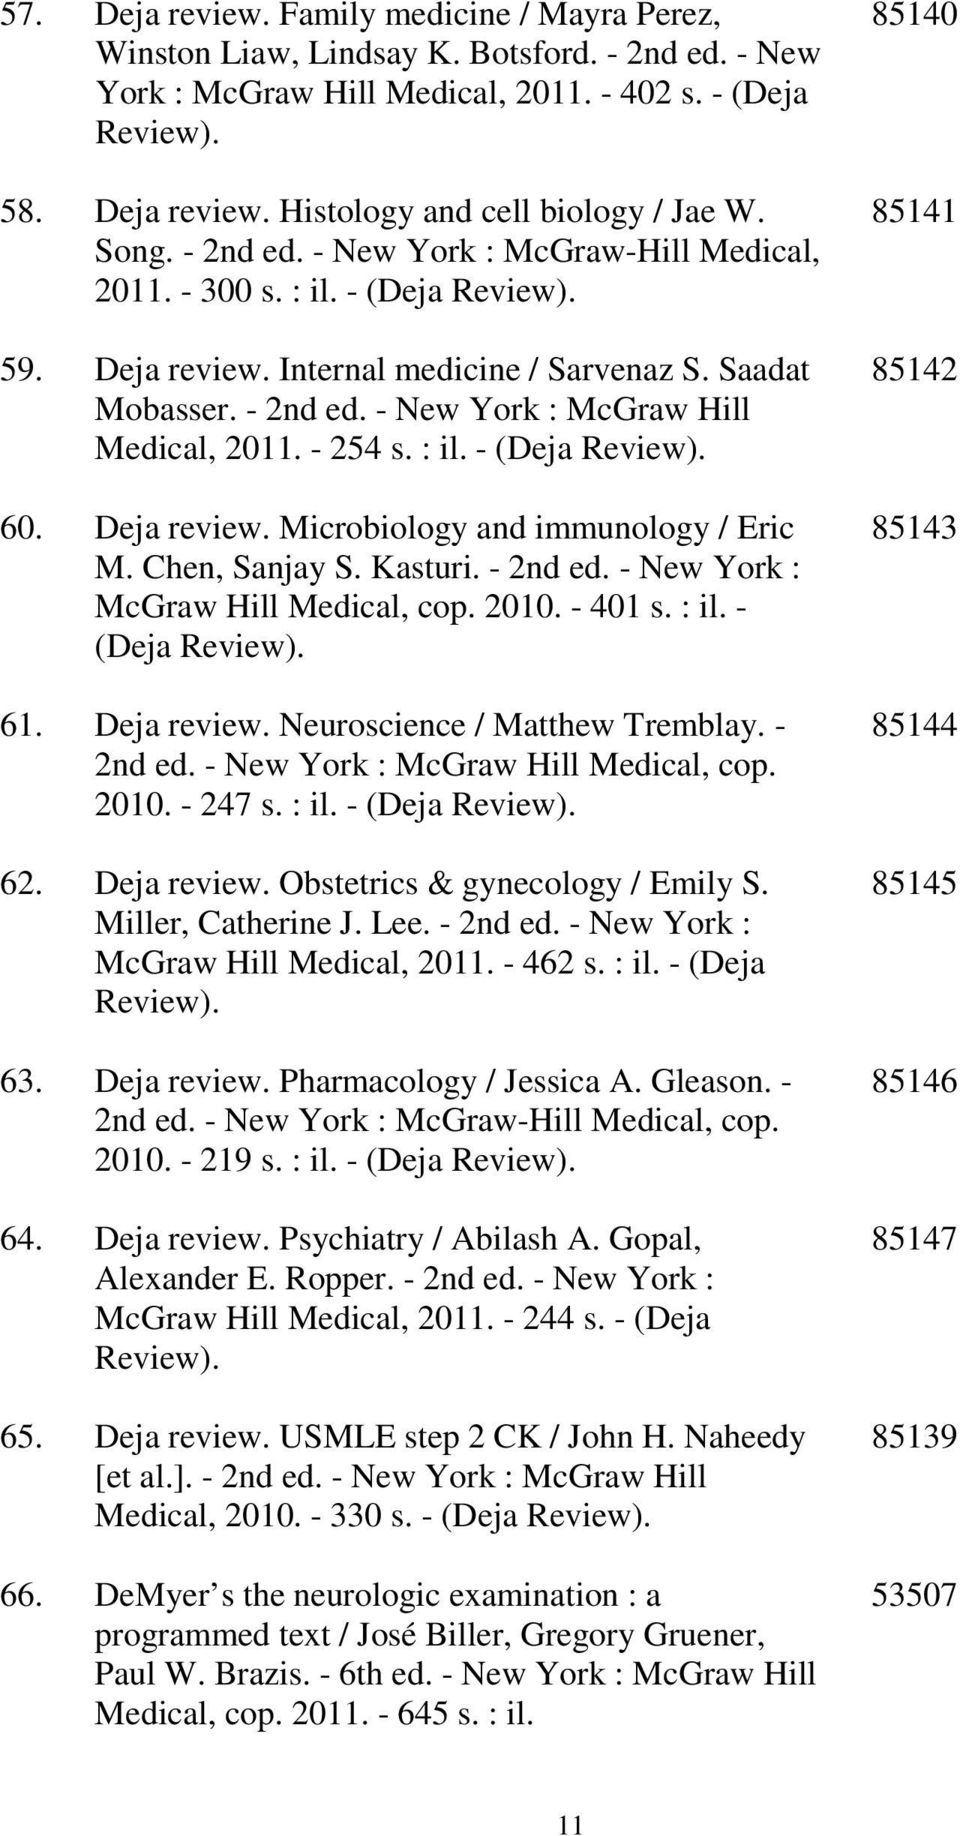 - 254 s. : il. - (Deja Review). 60. Deja review. Microbiology and immunology / Eric M. Chen, Sanjay S. Kasturi. - 2nd ed. - New York : McGraw Hill Medical, cop. 2010. - 401 s. : il. - (Deja Review). 61.